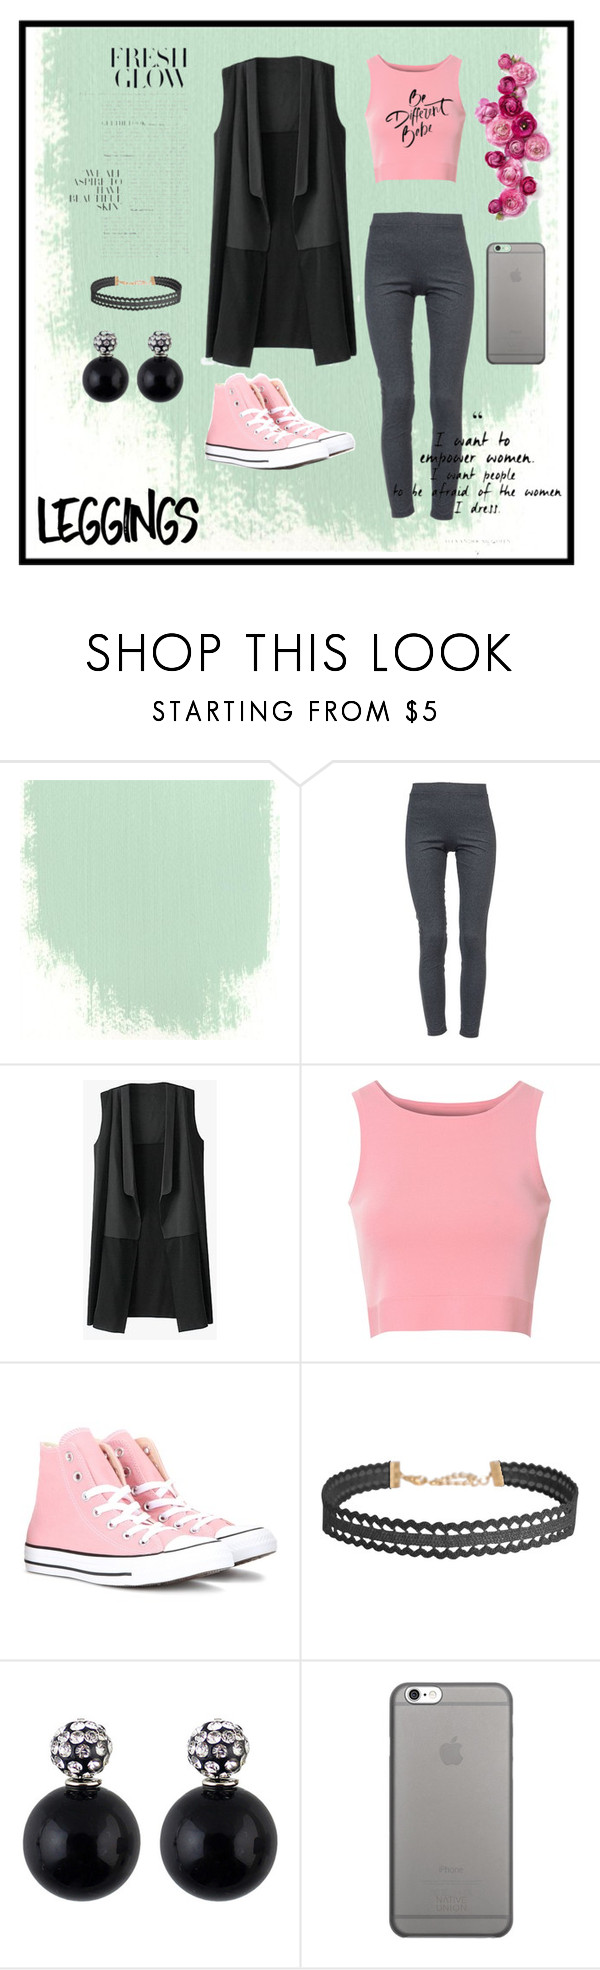 """""""""""Work out"""" style"""" by happy-bunny-69 ❤ liked on Polyvore featuring David Lerner, Glamorous, Converse, Humble Chic, Native Union, Leggings and WardrobeStaples"""